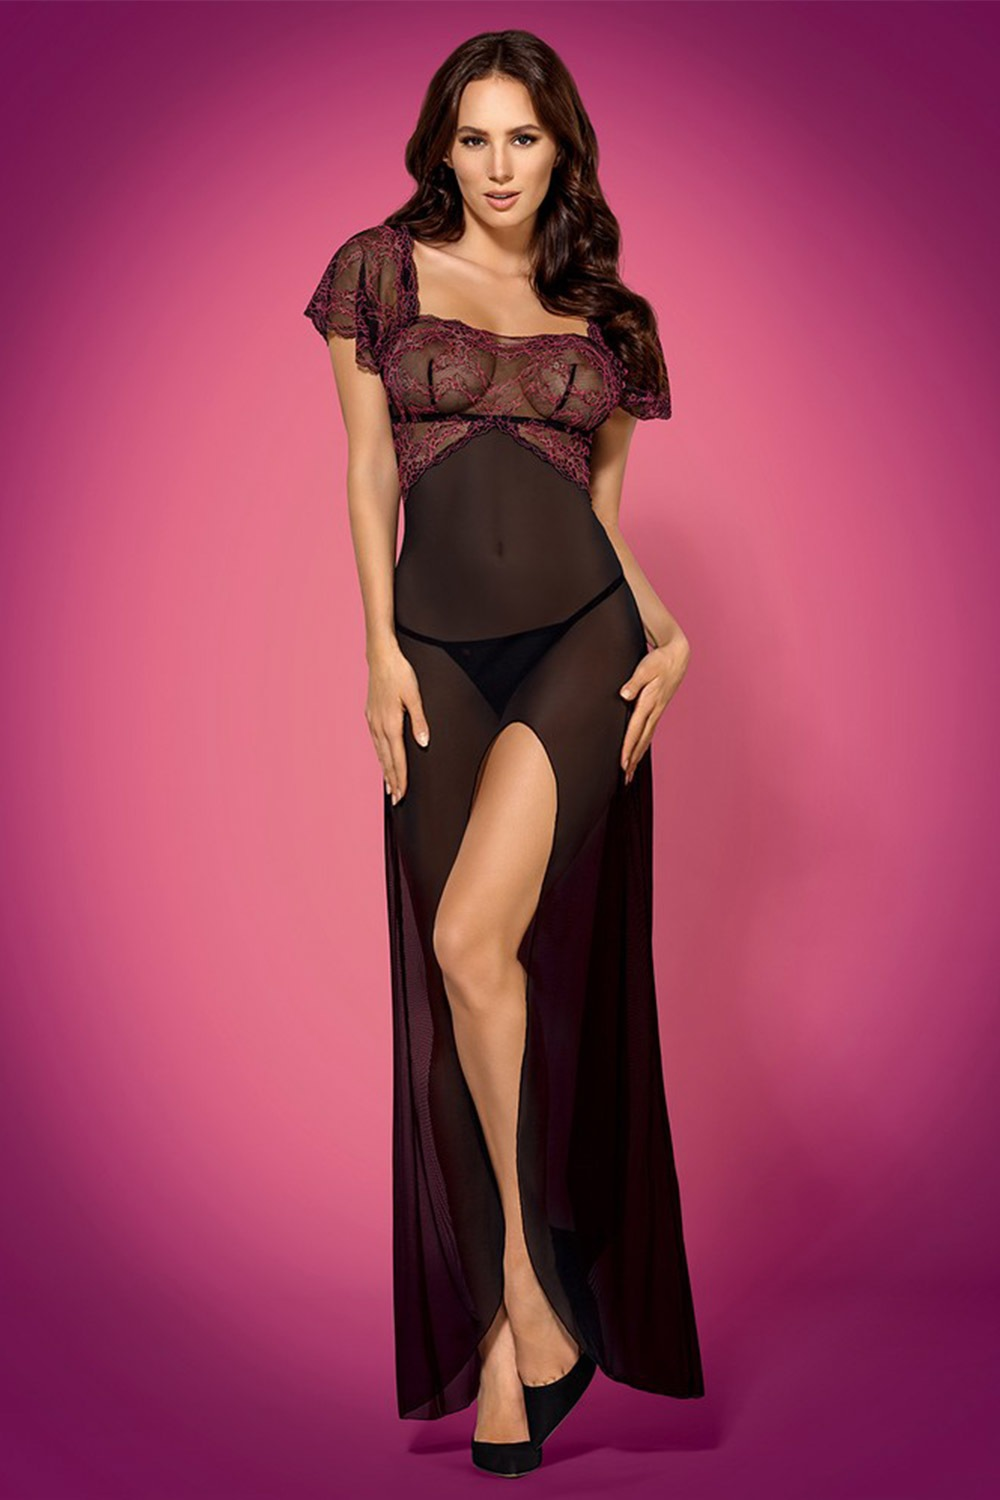 Compleu seducator Sedusia long, neglijeu si chilot